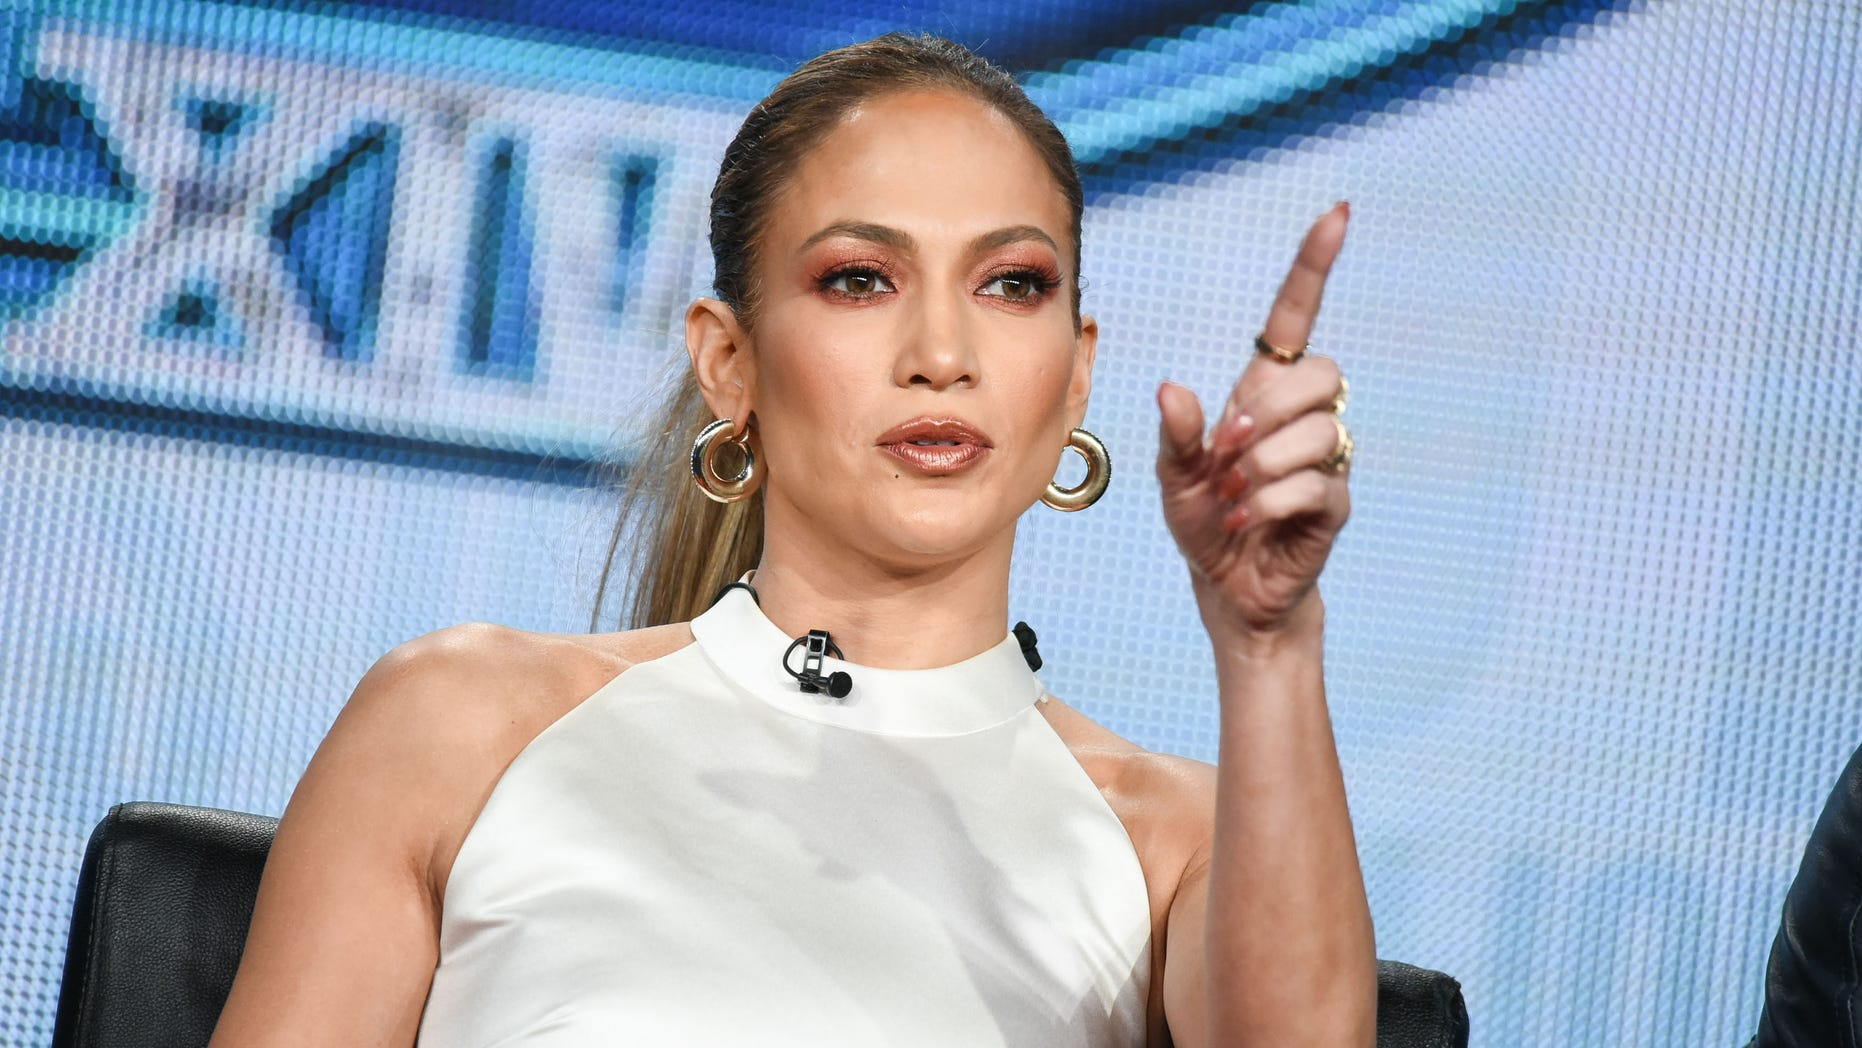 """Jennifer Lopez speaks on stage during the """"American Idol"""" panel at the Fox 2015 Winter TCA on Saturday, Jan. 17, 2015, in Pasadena, Calif. (Photo by Richard Shotwell/Invision/AP)"""